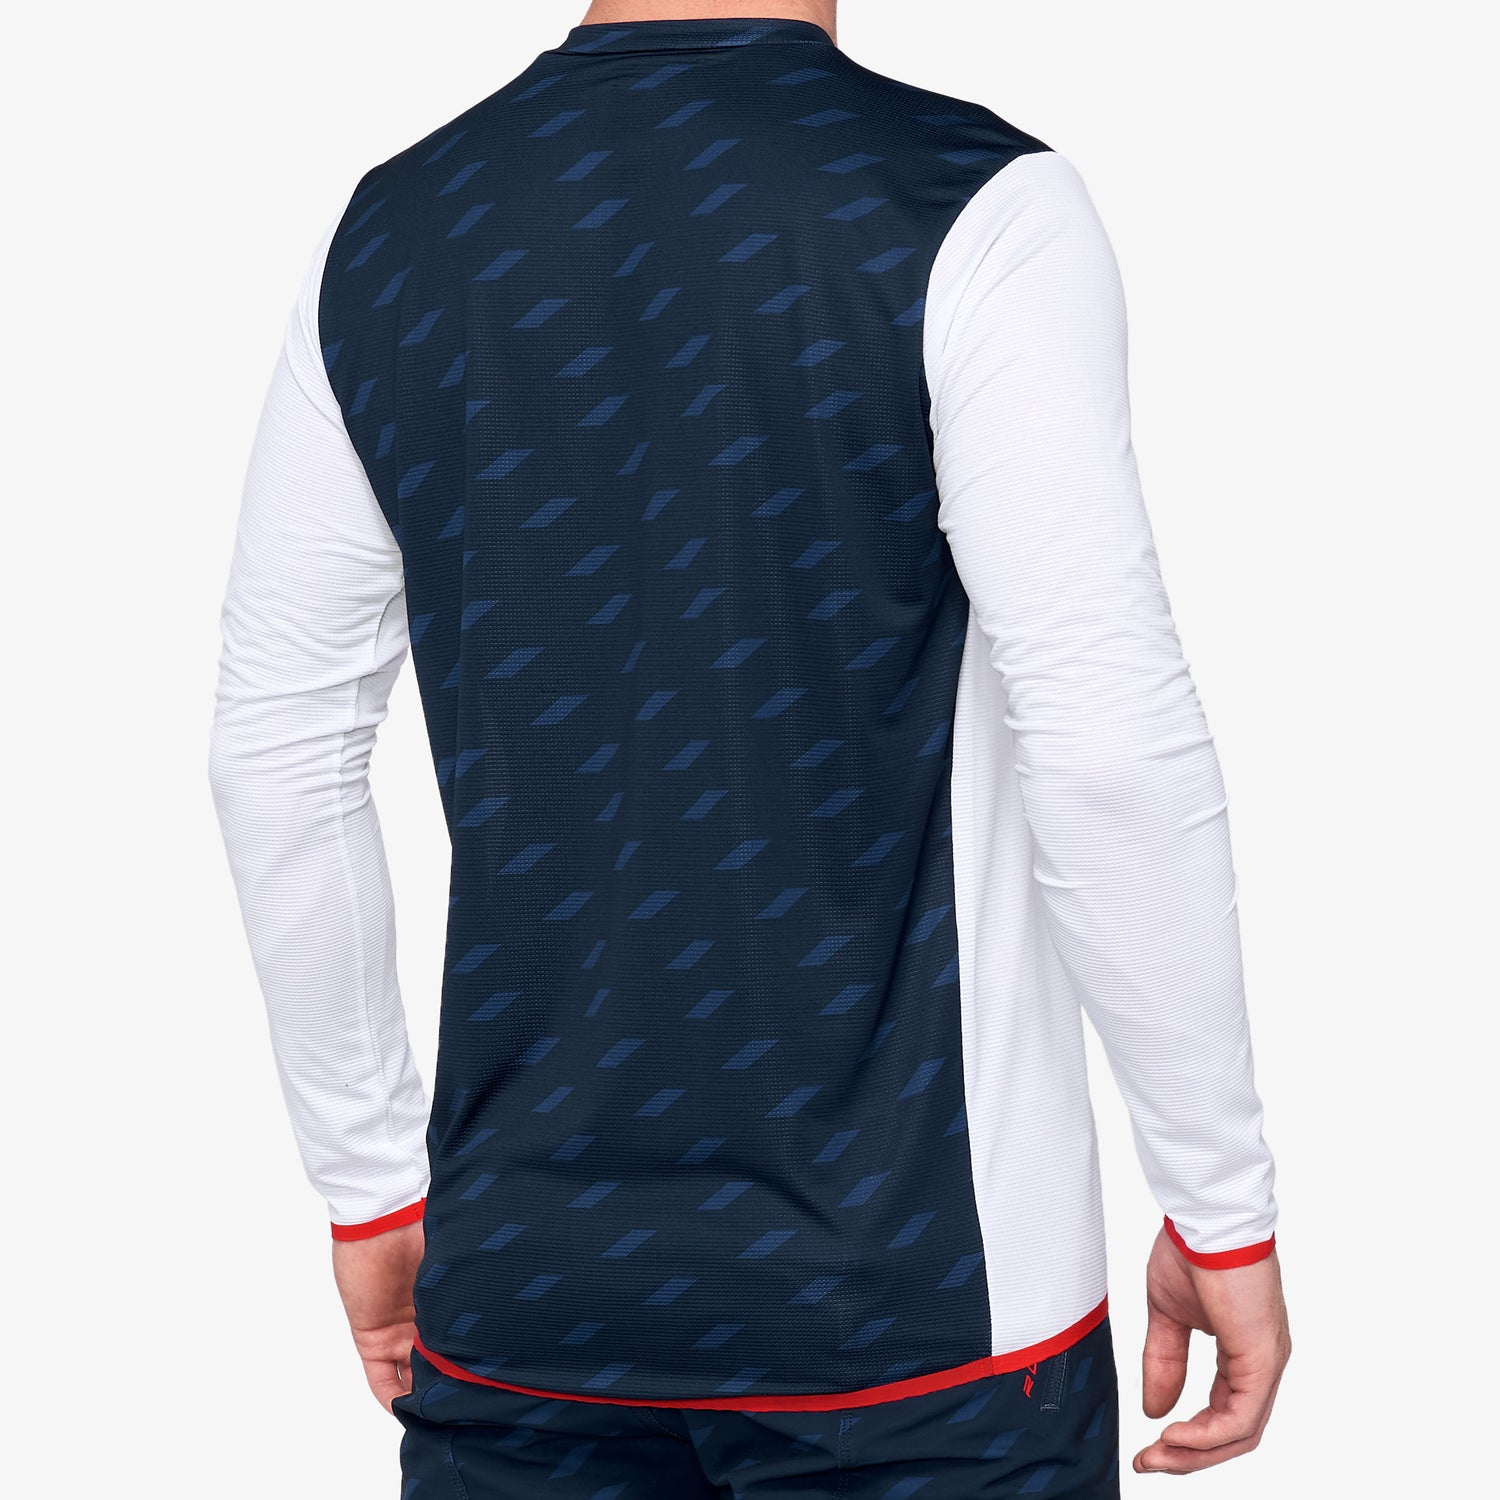 R-CORE X Limited Edition Jersey Navy/White